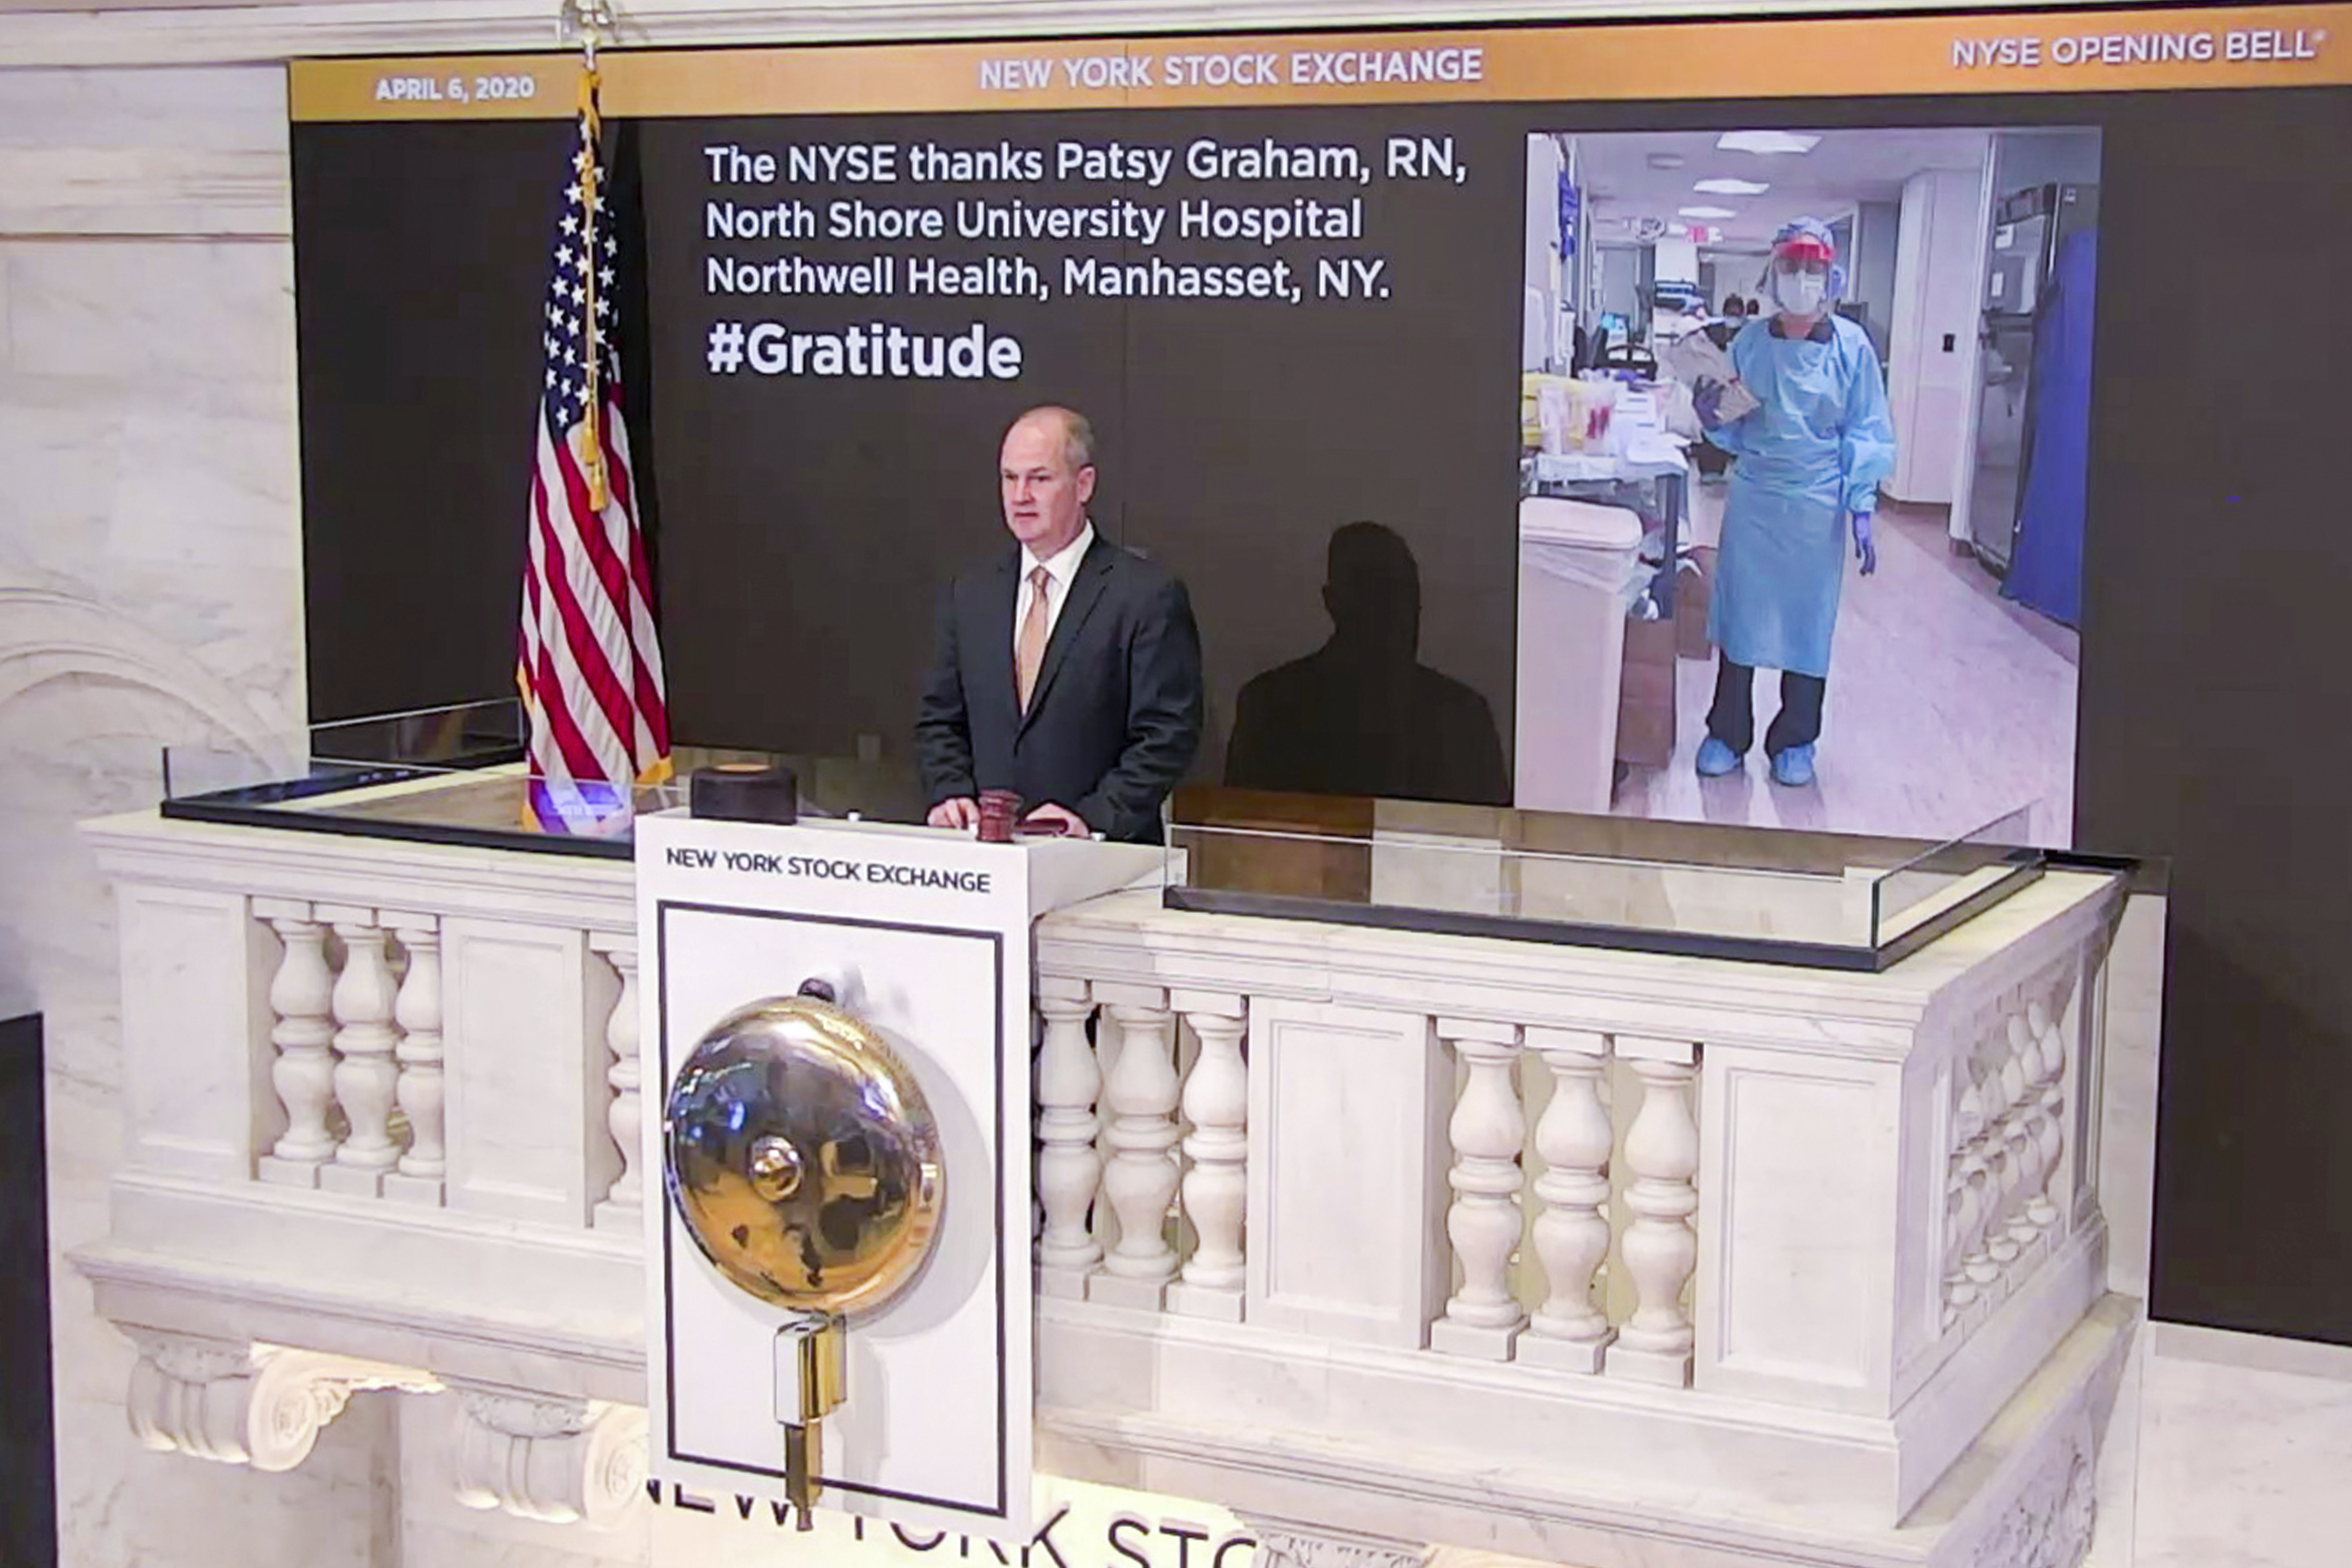 Chief Security Officer Kevin Fitzgibbons rings the opening bell at the NYSE, on April 6, 2020.